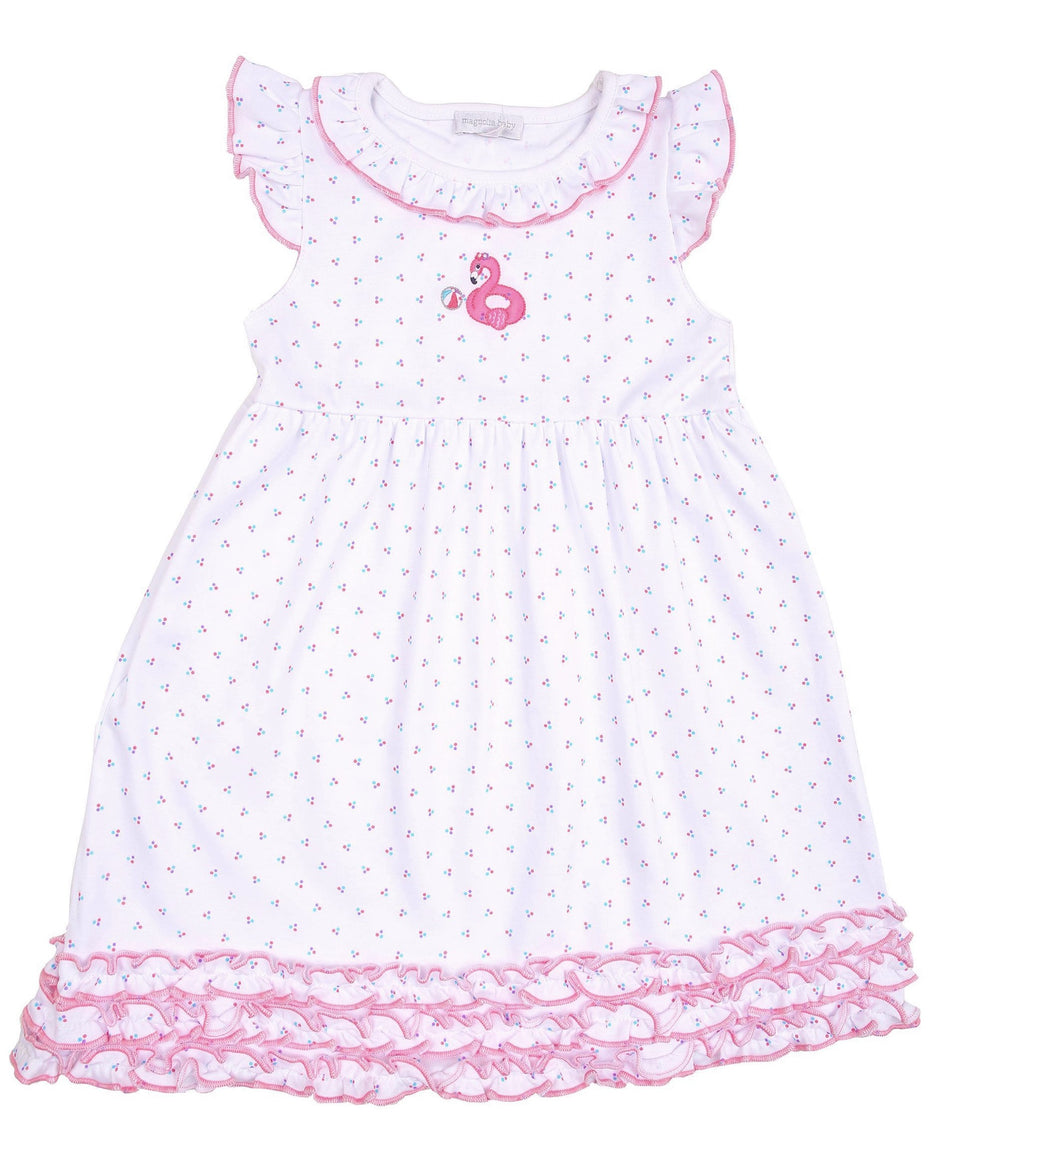 POOL TIME DRESS (384-82T-PK)